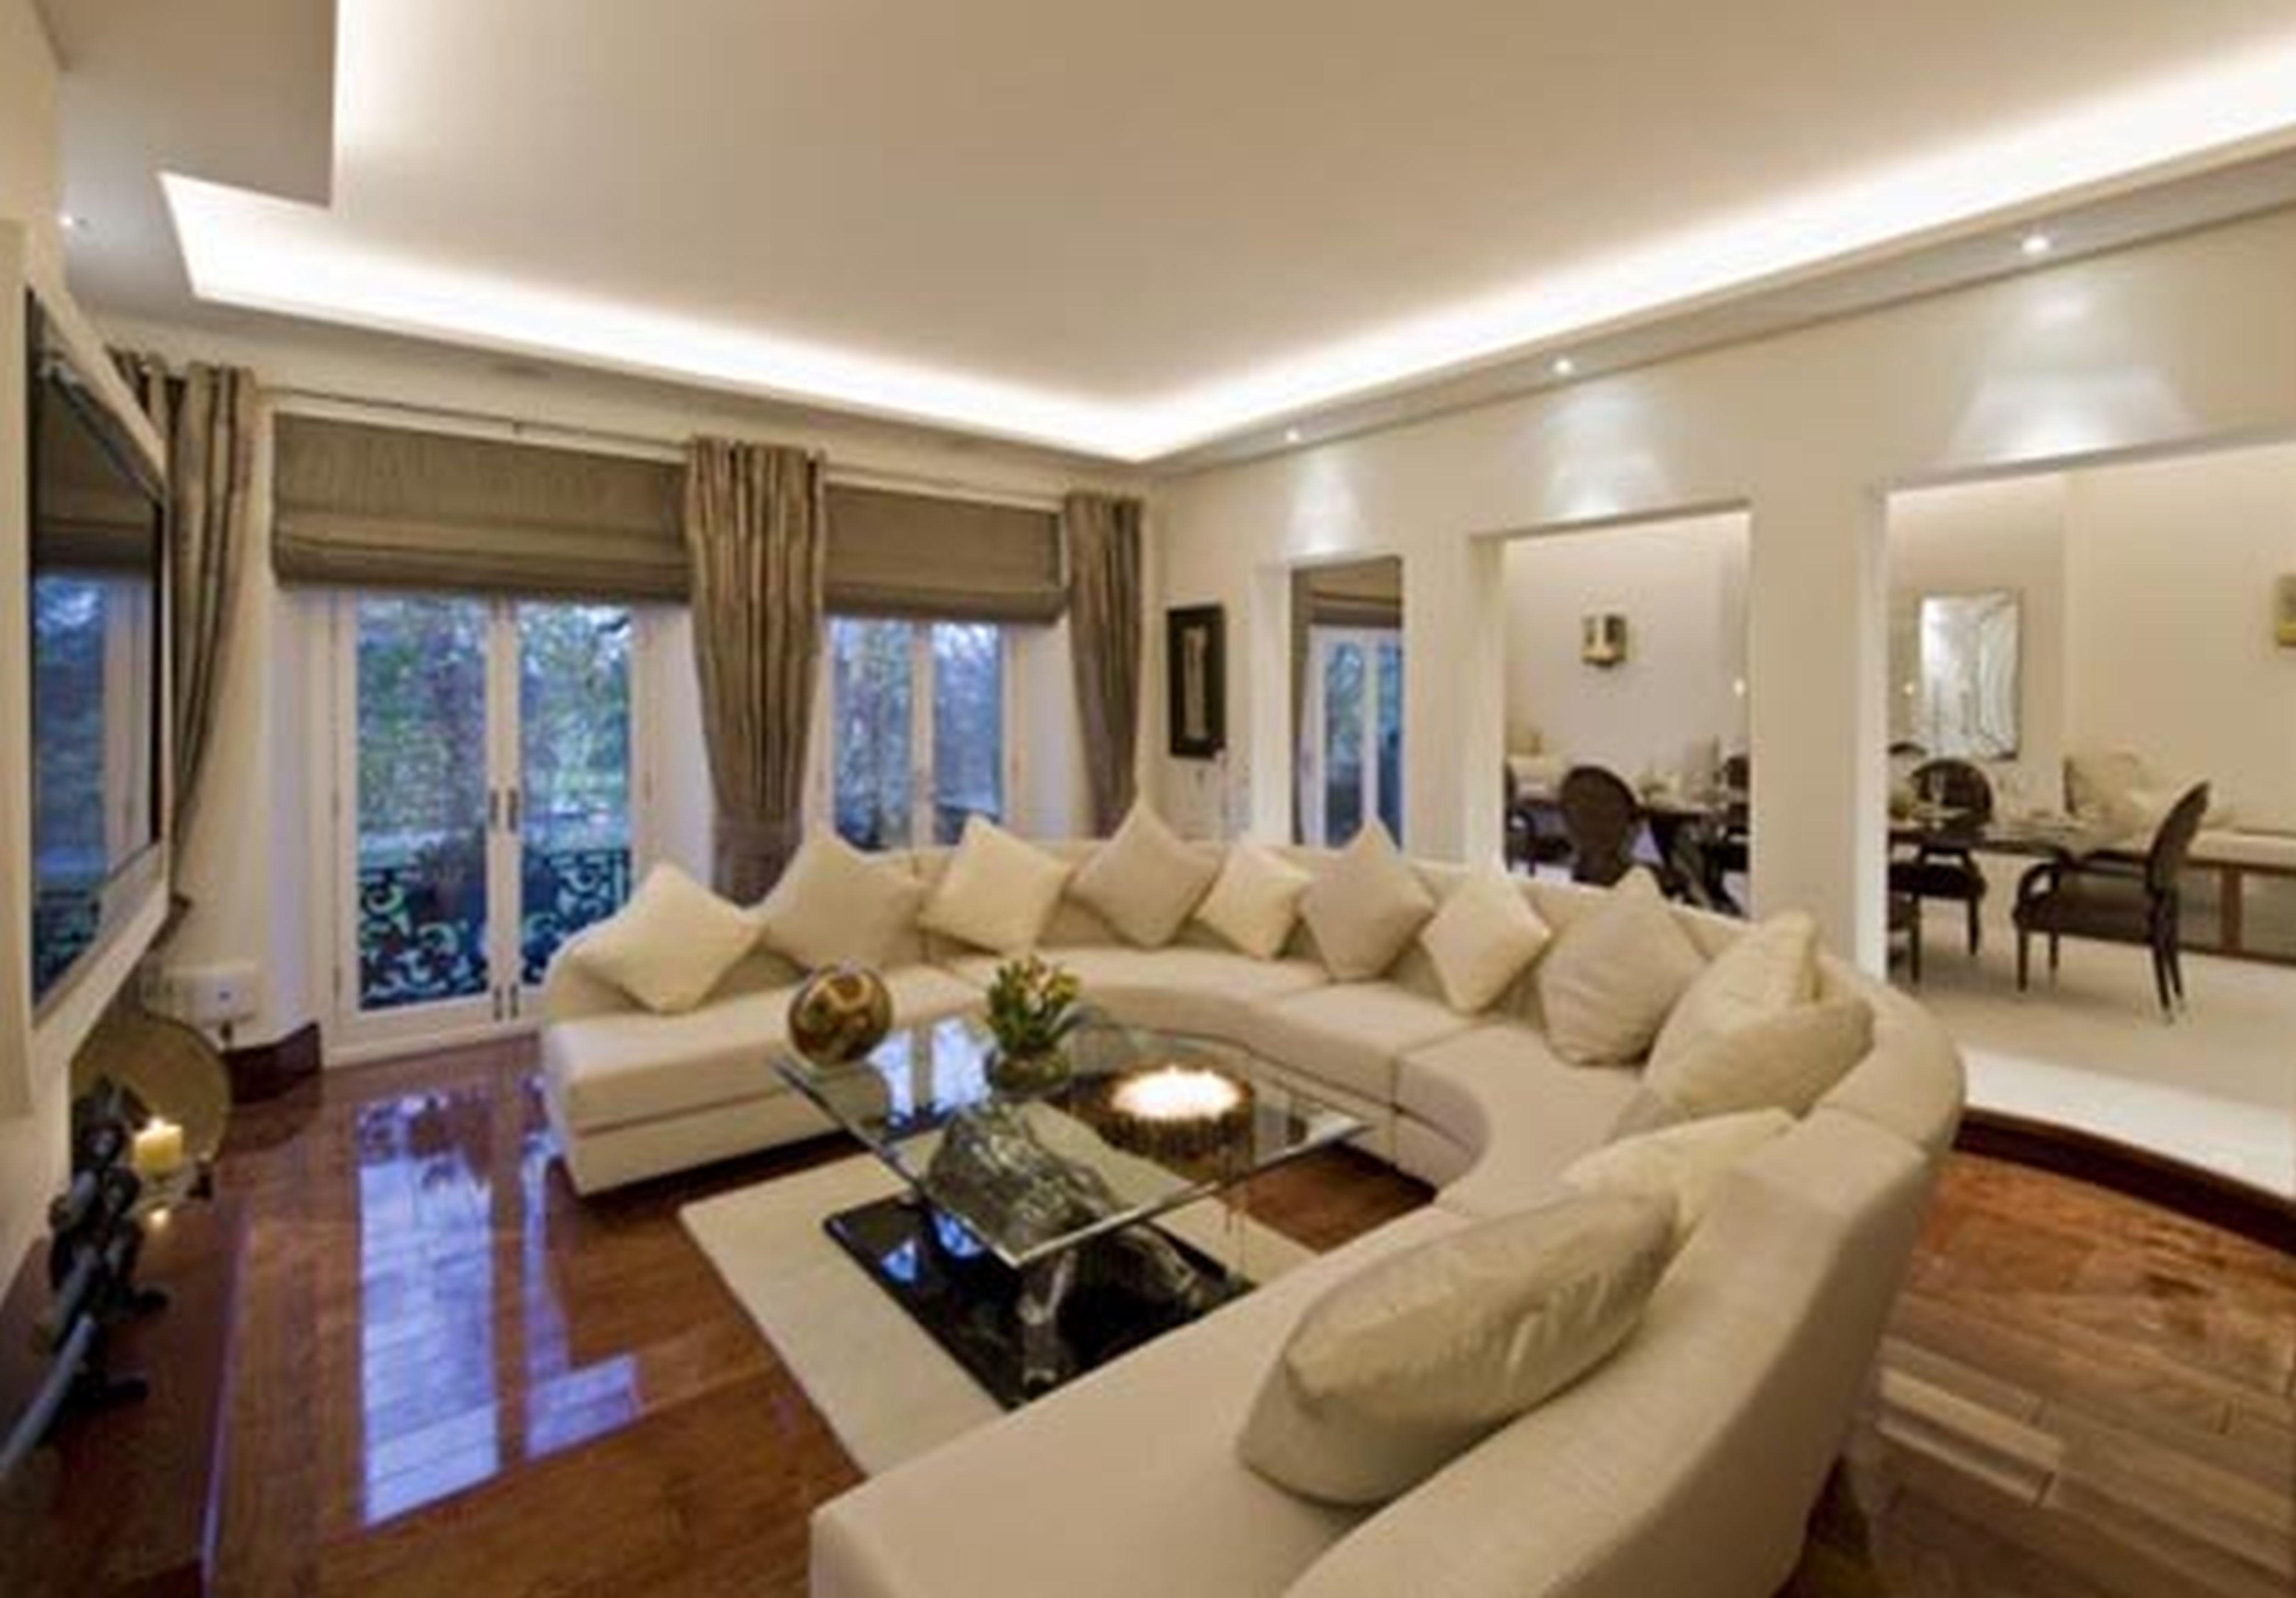 10 Attractive Living Room Decorating Ideas For Cheap luxury decorating living room ideas on a budget factsonline co 2020